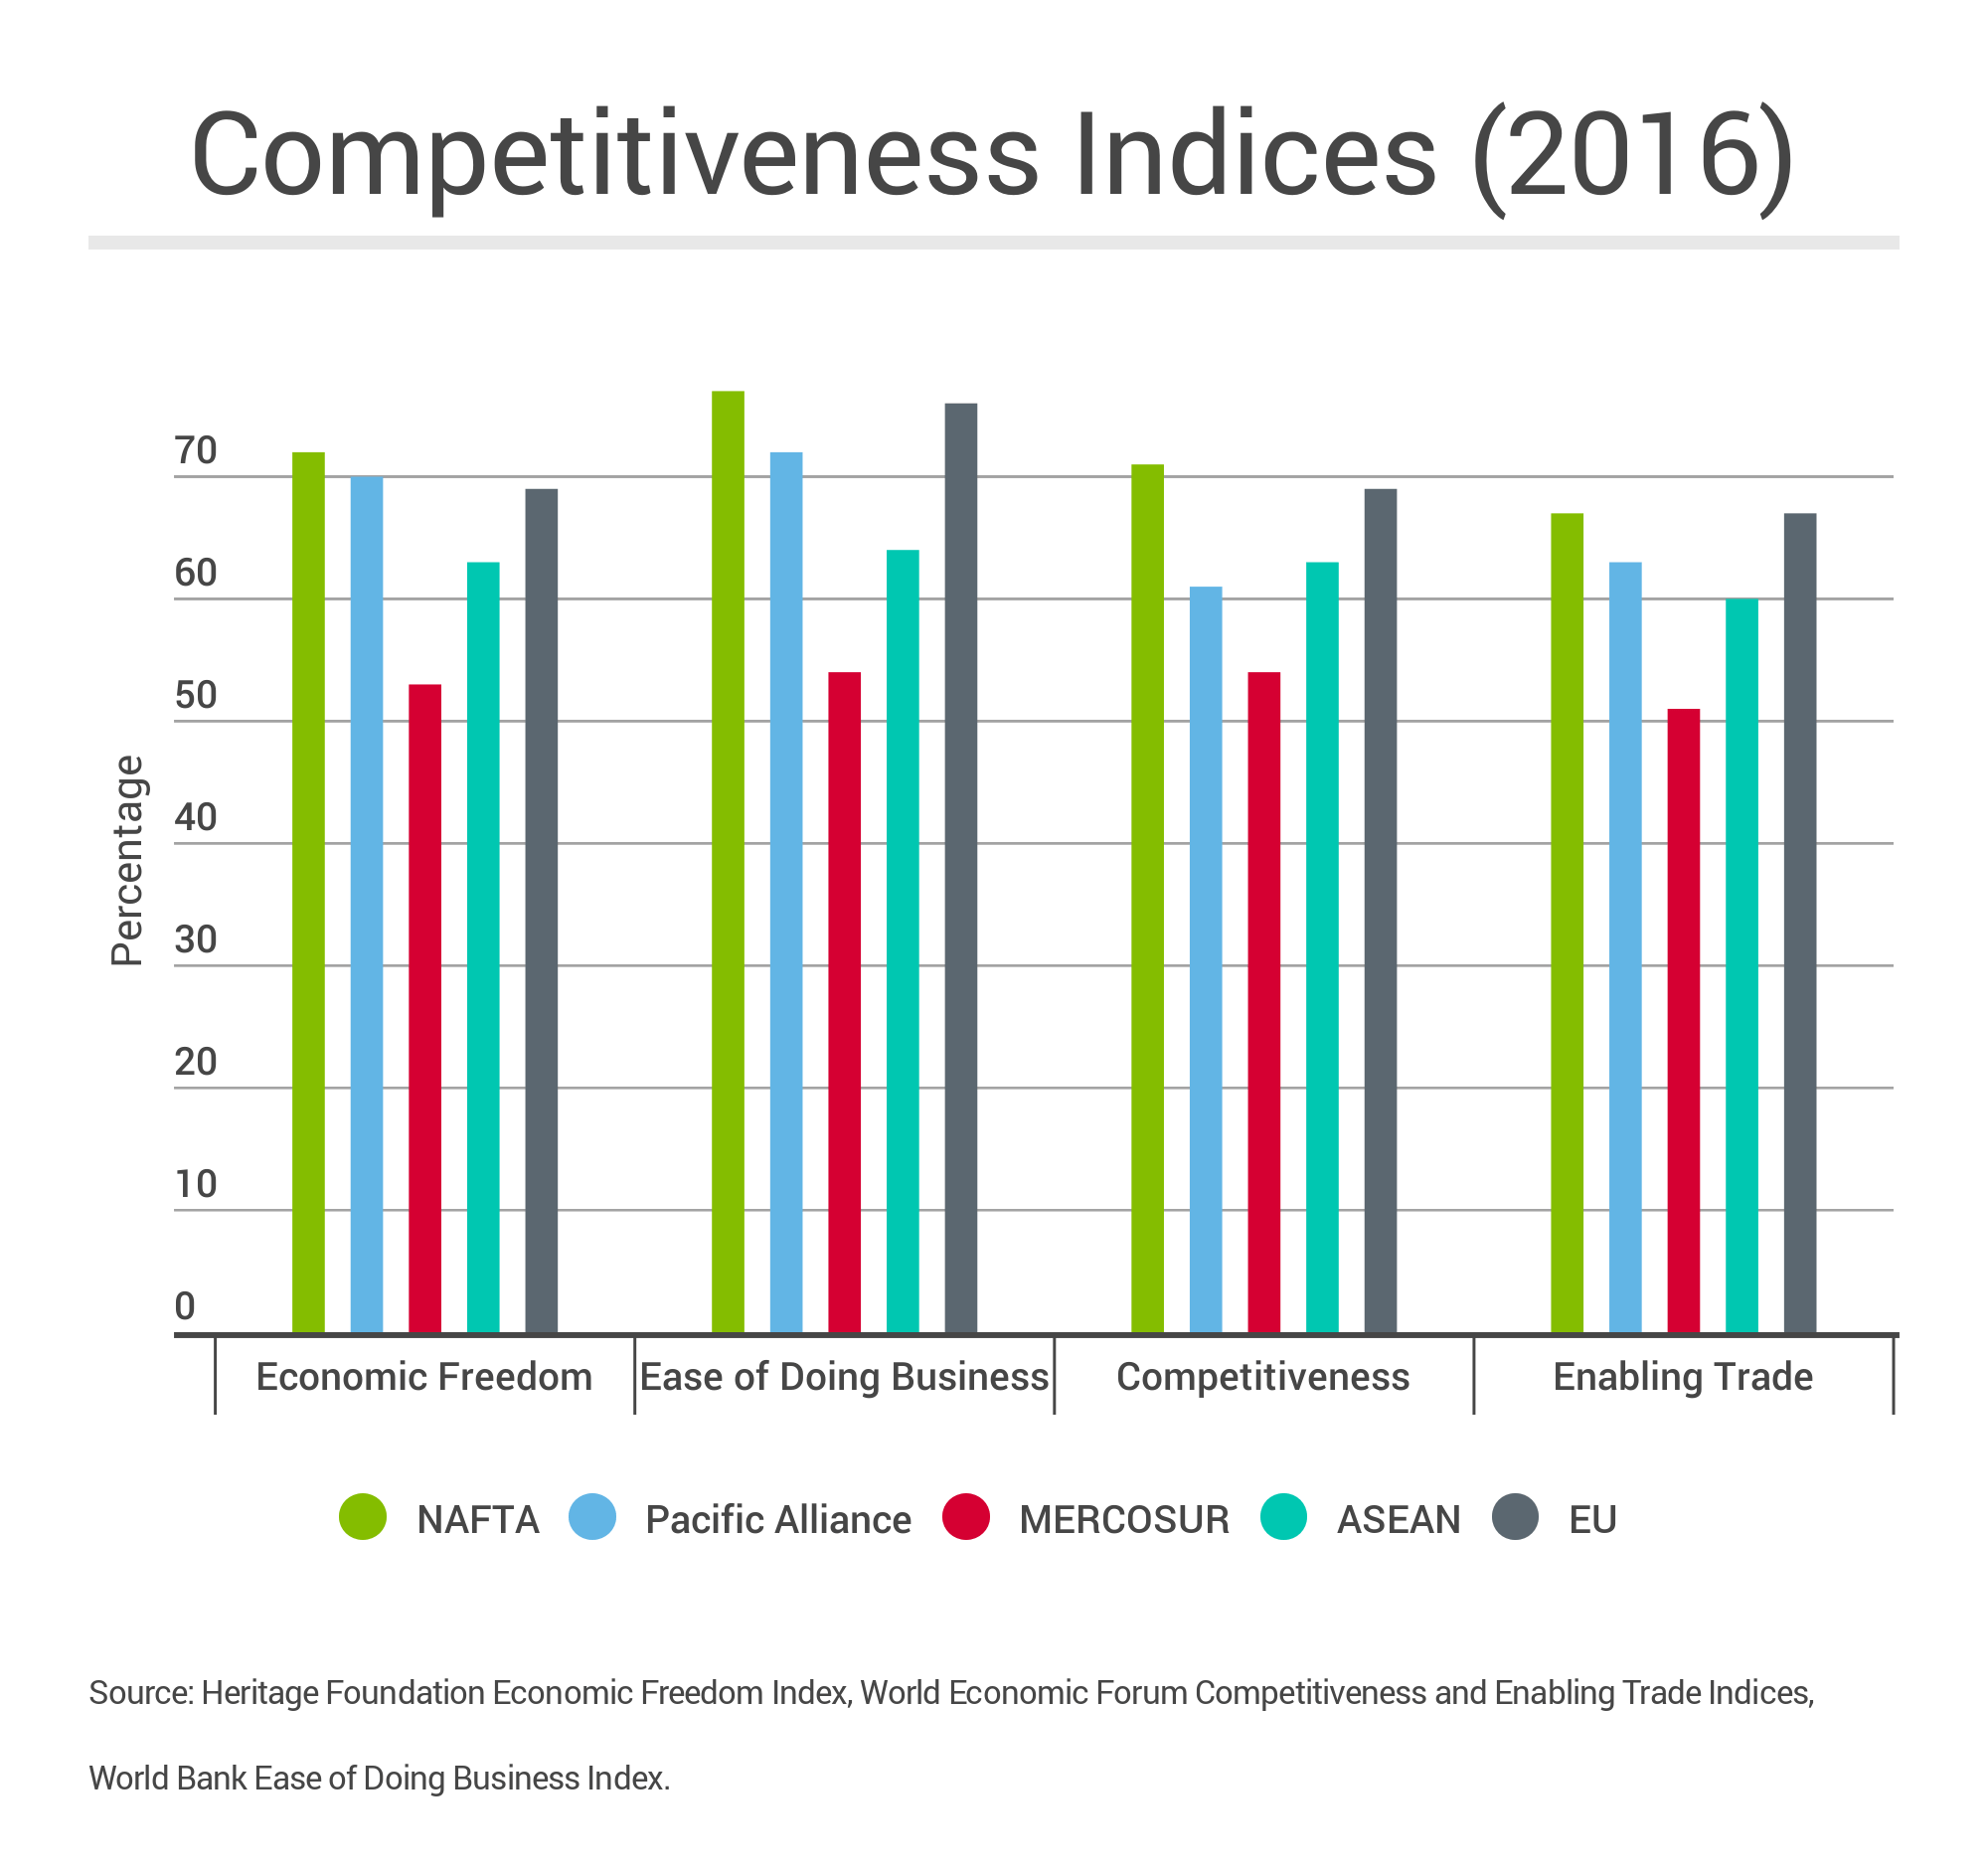 MERCOSUR_Competitive_Indices